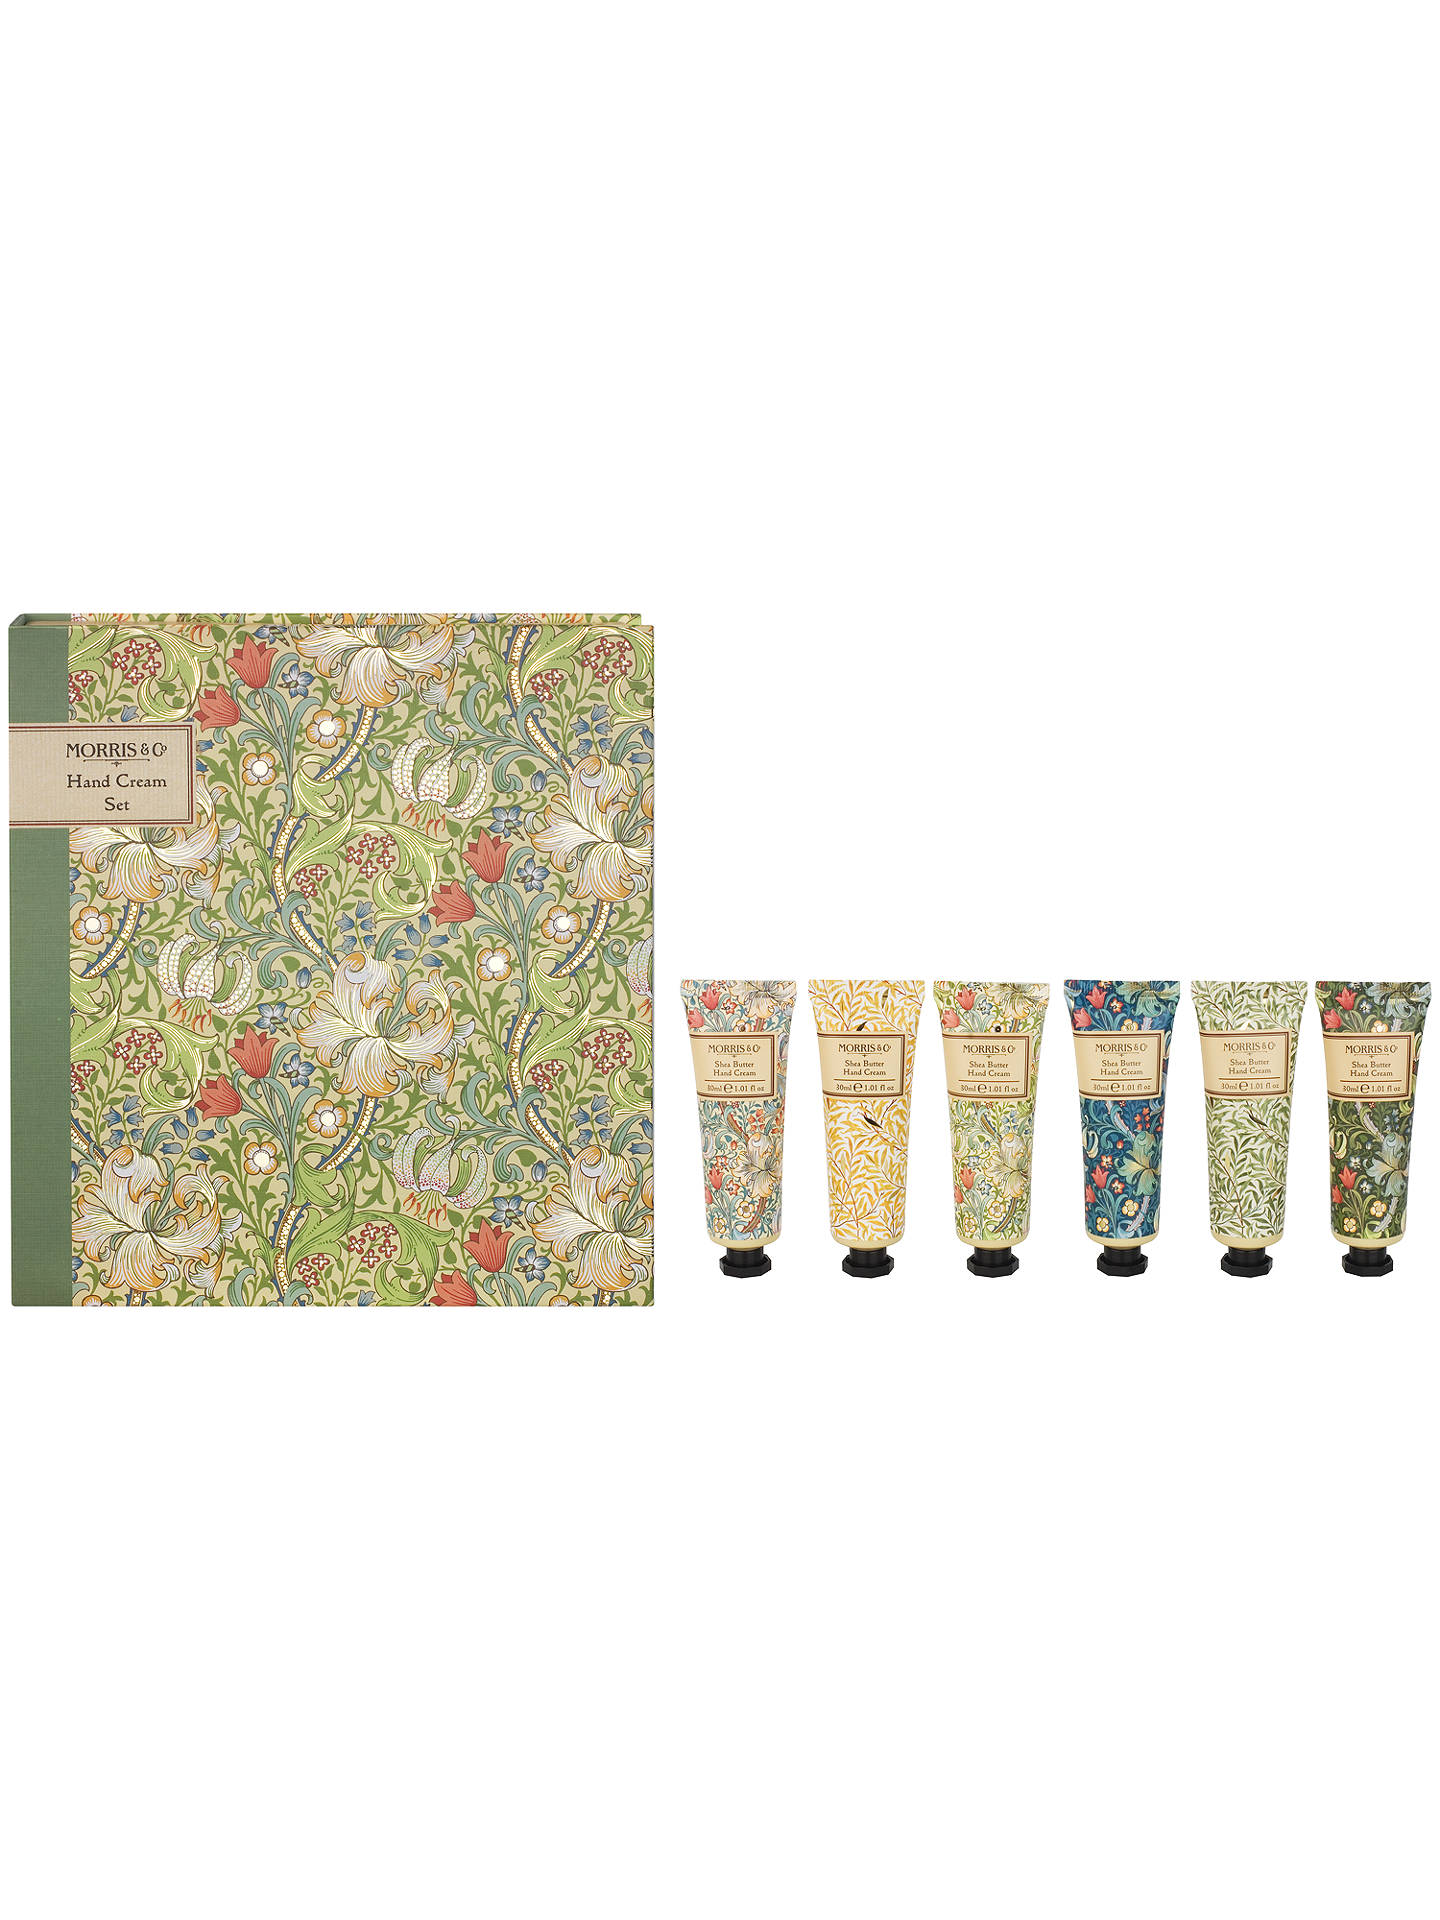 BuyHeathcote & Ivory Morris & Co Golden Lily Hand Cream Set Online at johnlewis.com